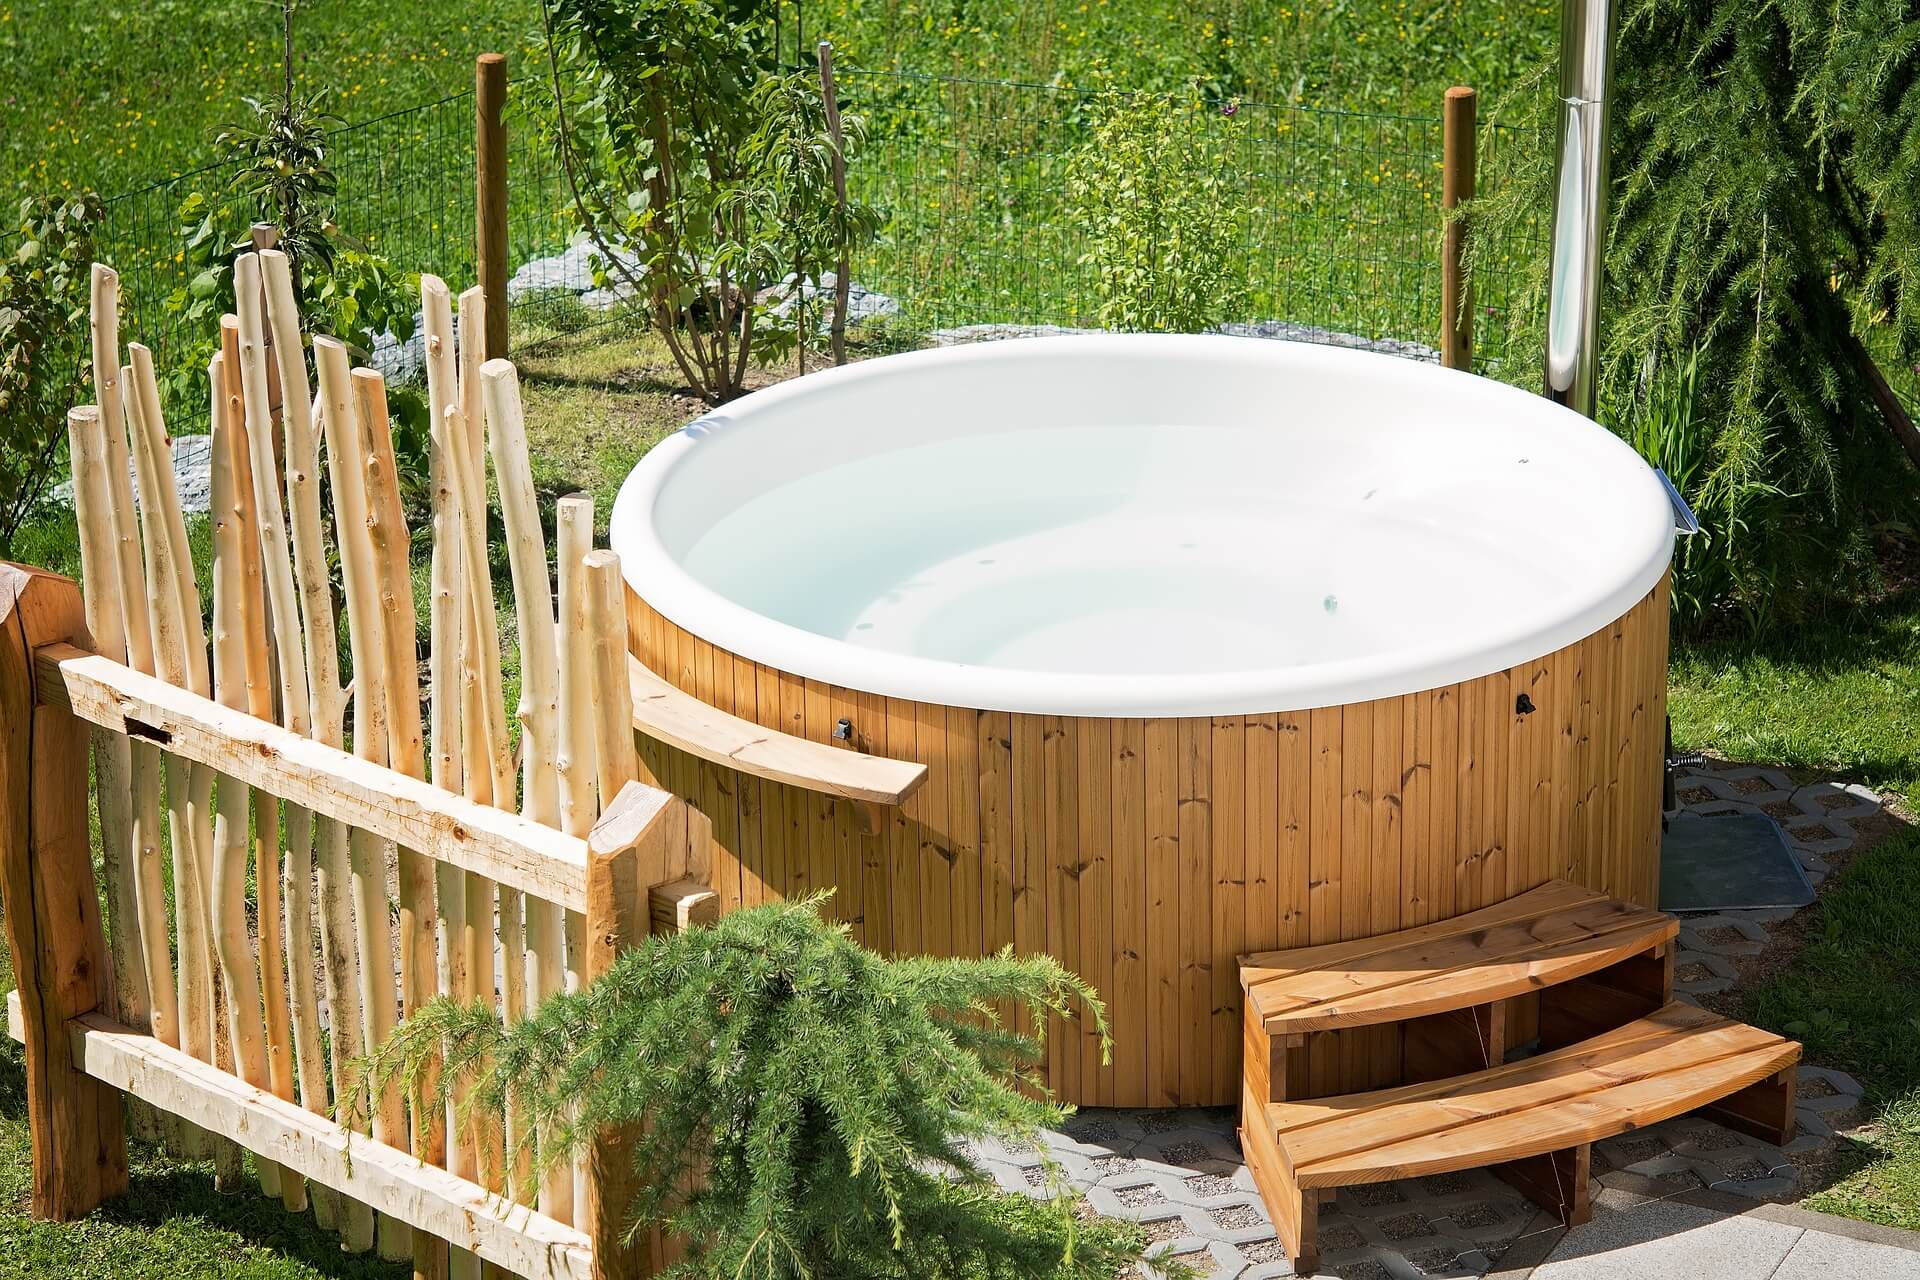 Jacuzzi tub installation in Chelmsford